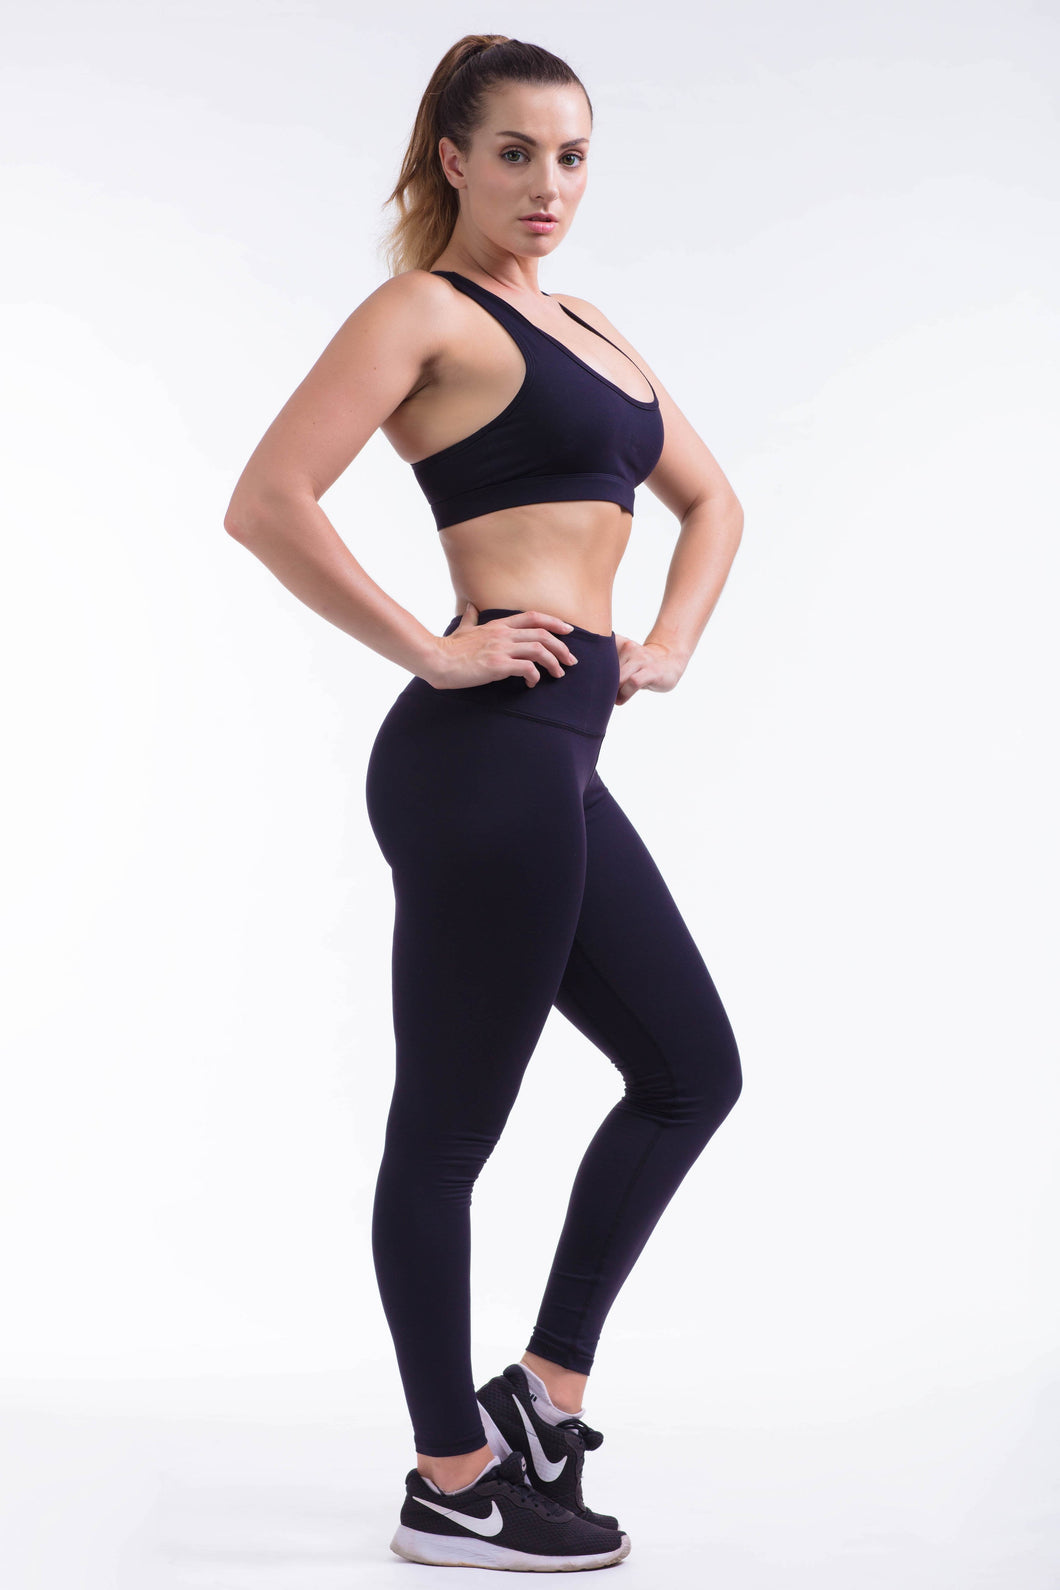 BARE IN MIND LEGGINGS - BLACK - hustletics.com